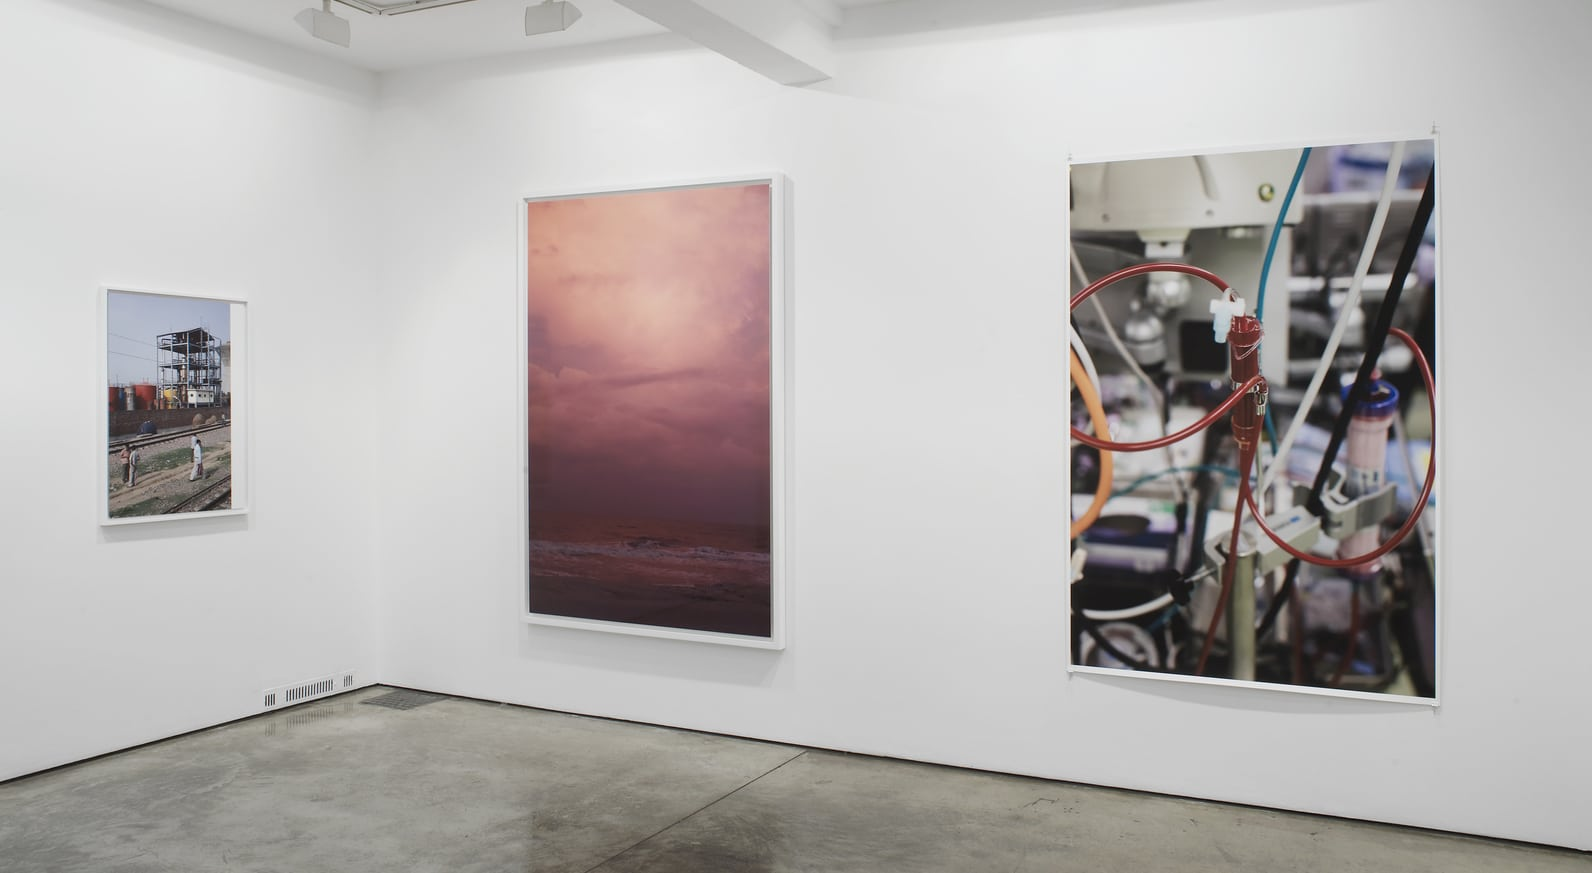 Wolfgang Tillmans The Maureen Paley Gallery London Exhibition Review at www.cellophaneland.com